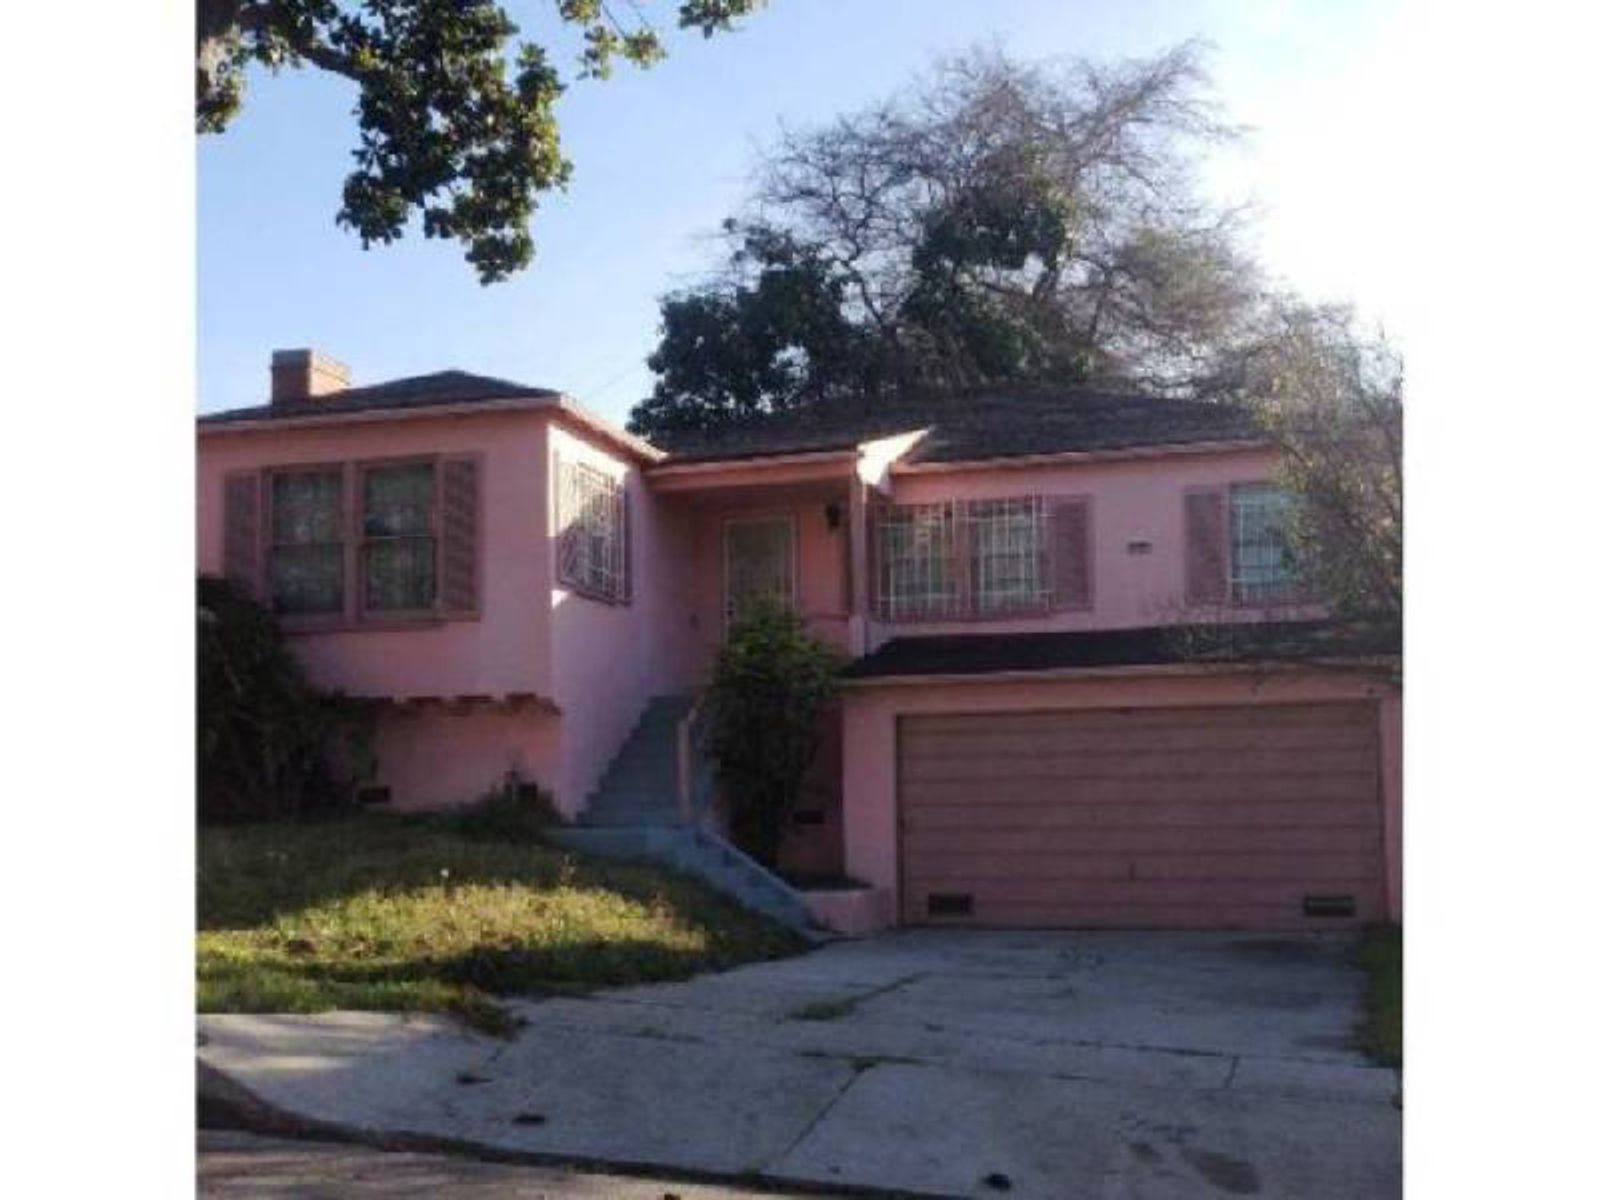 Remodel or Build New!, Los Angeles CA Single Family Home - Los Angeles Real Estate